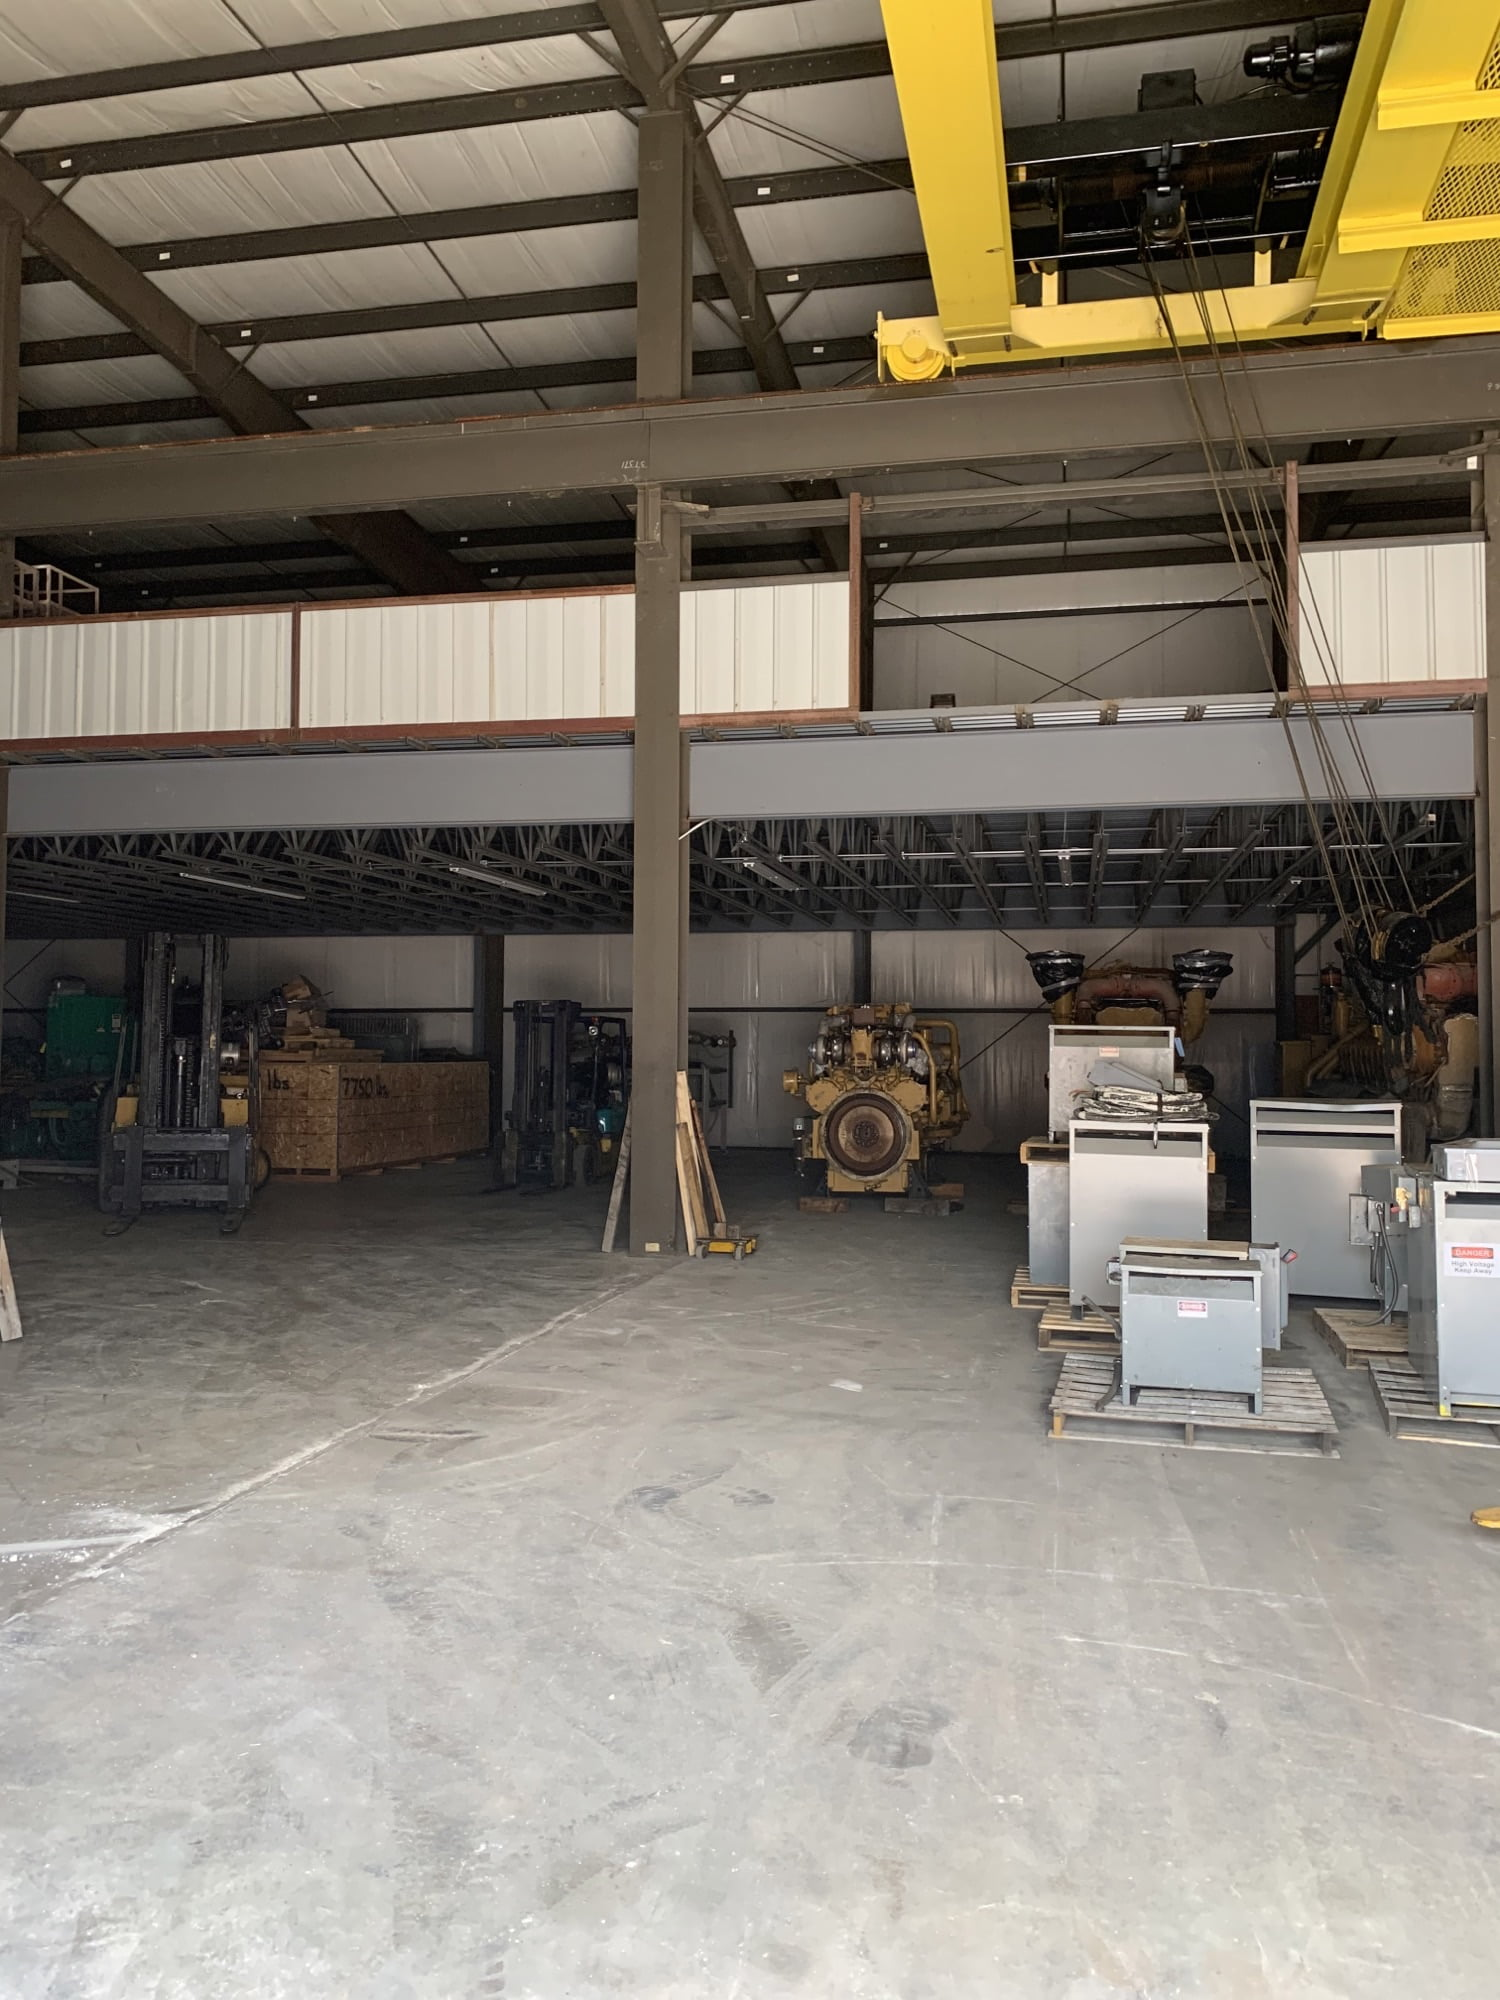 Warehouse storage services at T.L. Jackson Construction, Inc. in York, PA